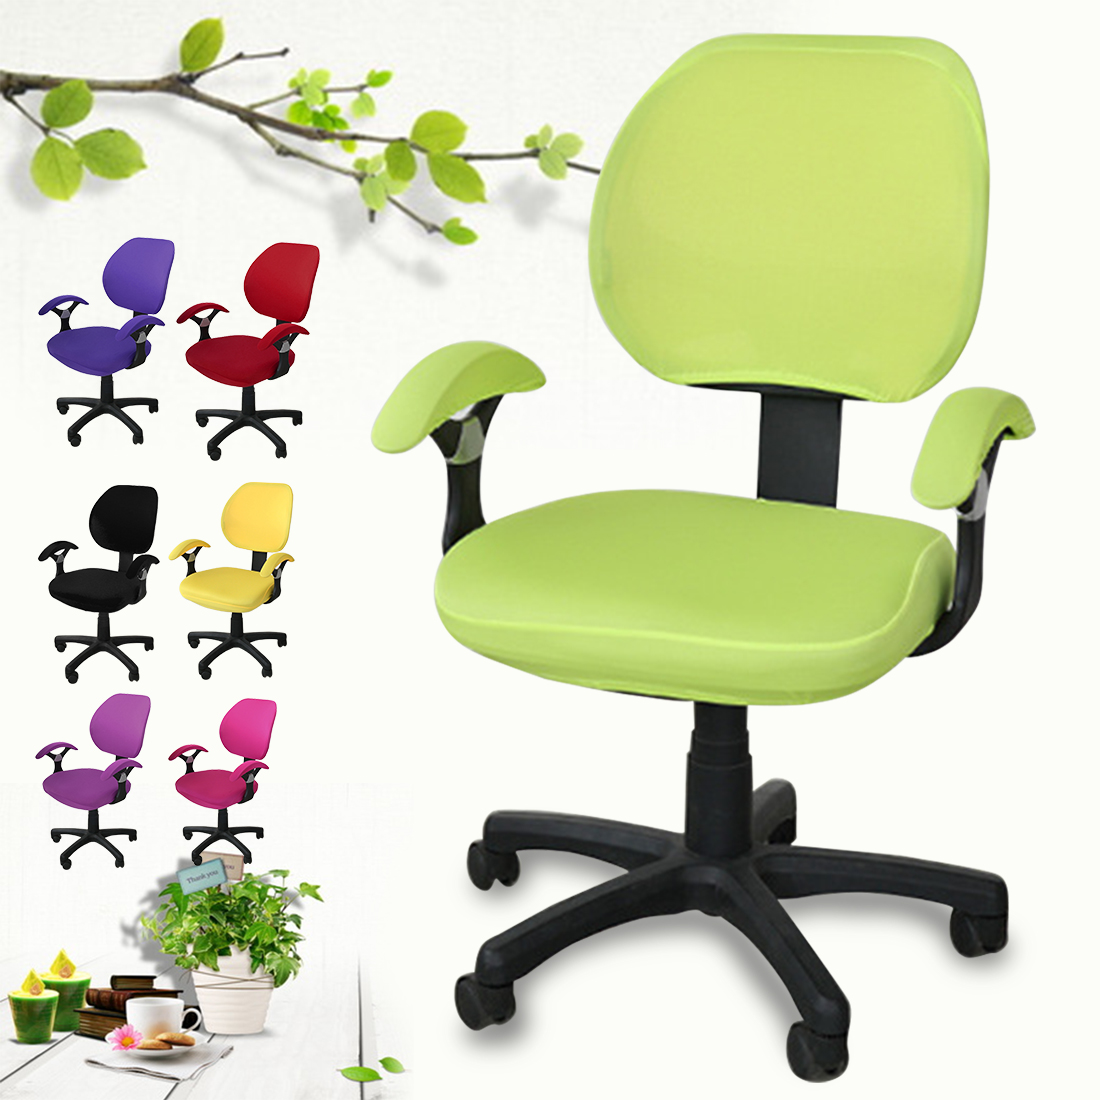 Dining Chair Covers Aliexpress Kitchen Chairs Uk Spandex Computer Cover Fit For Office With